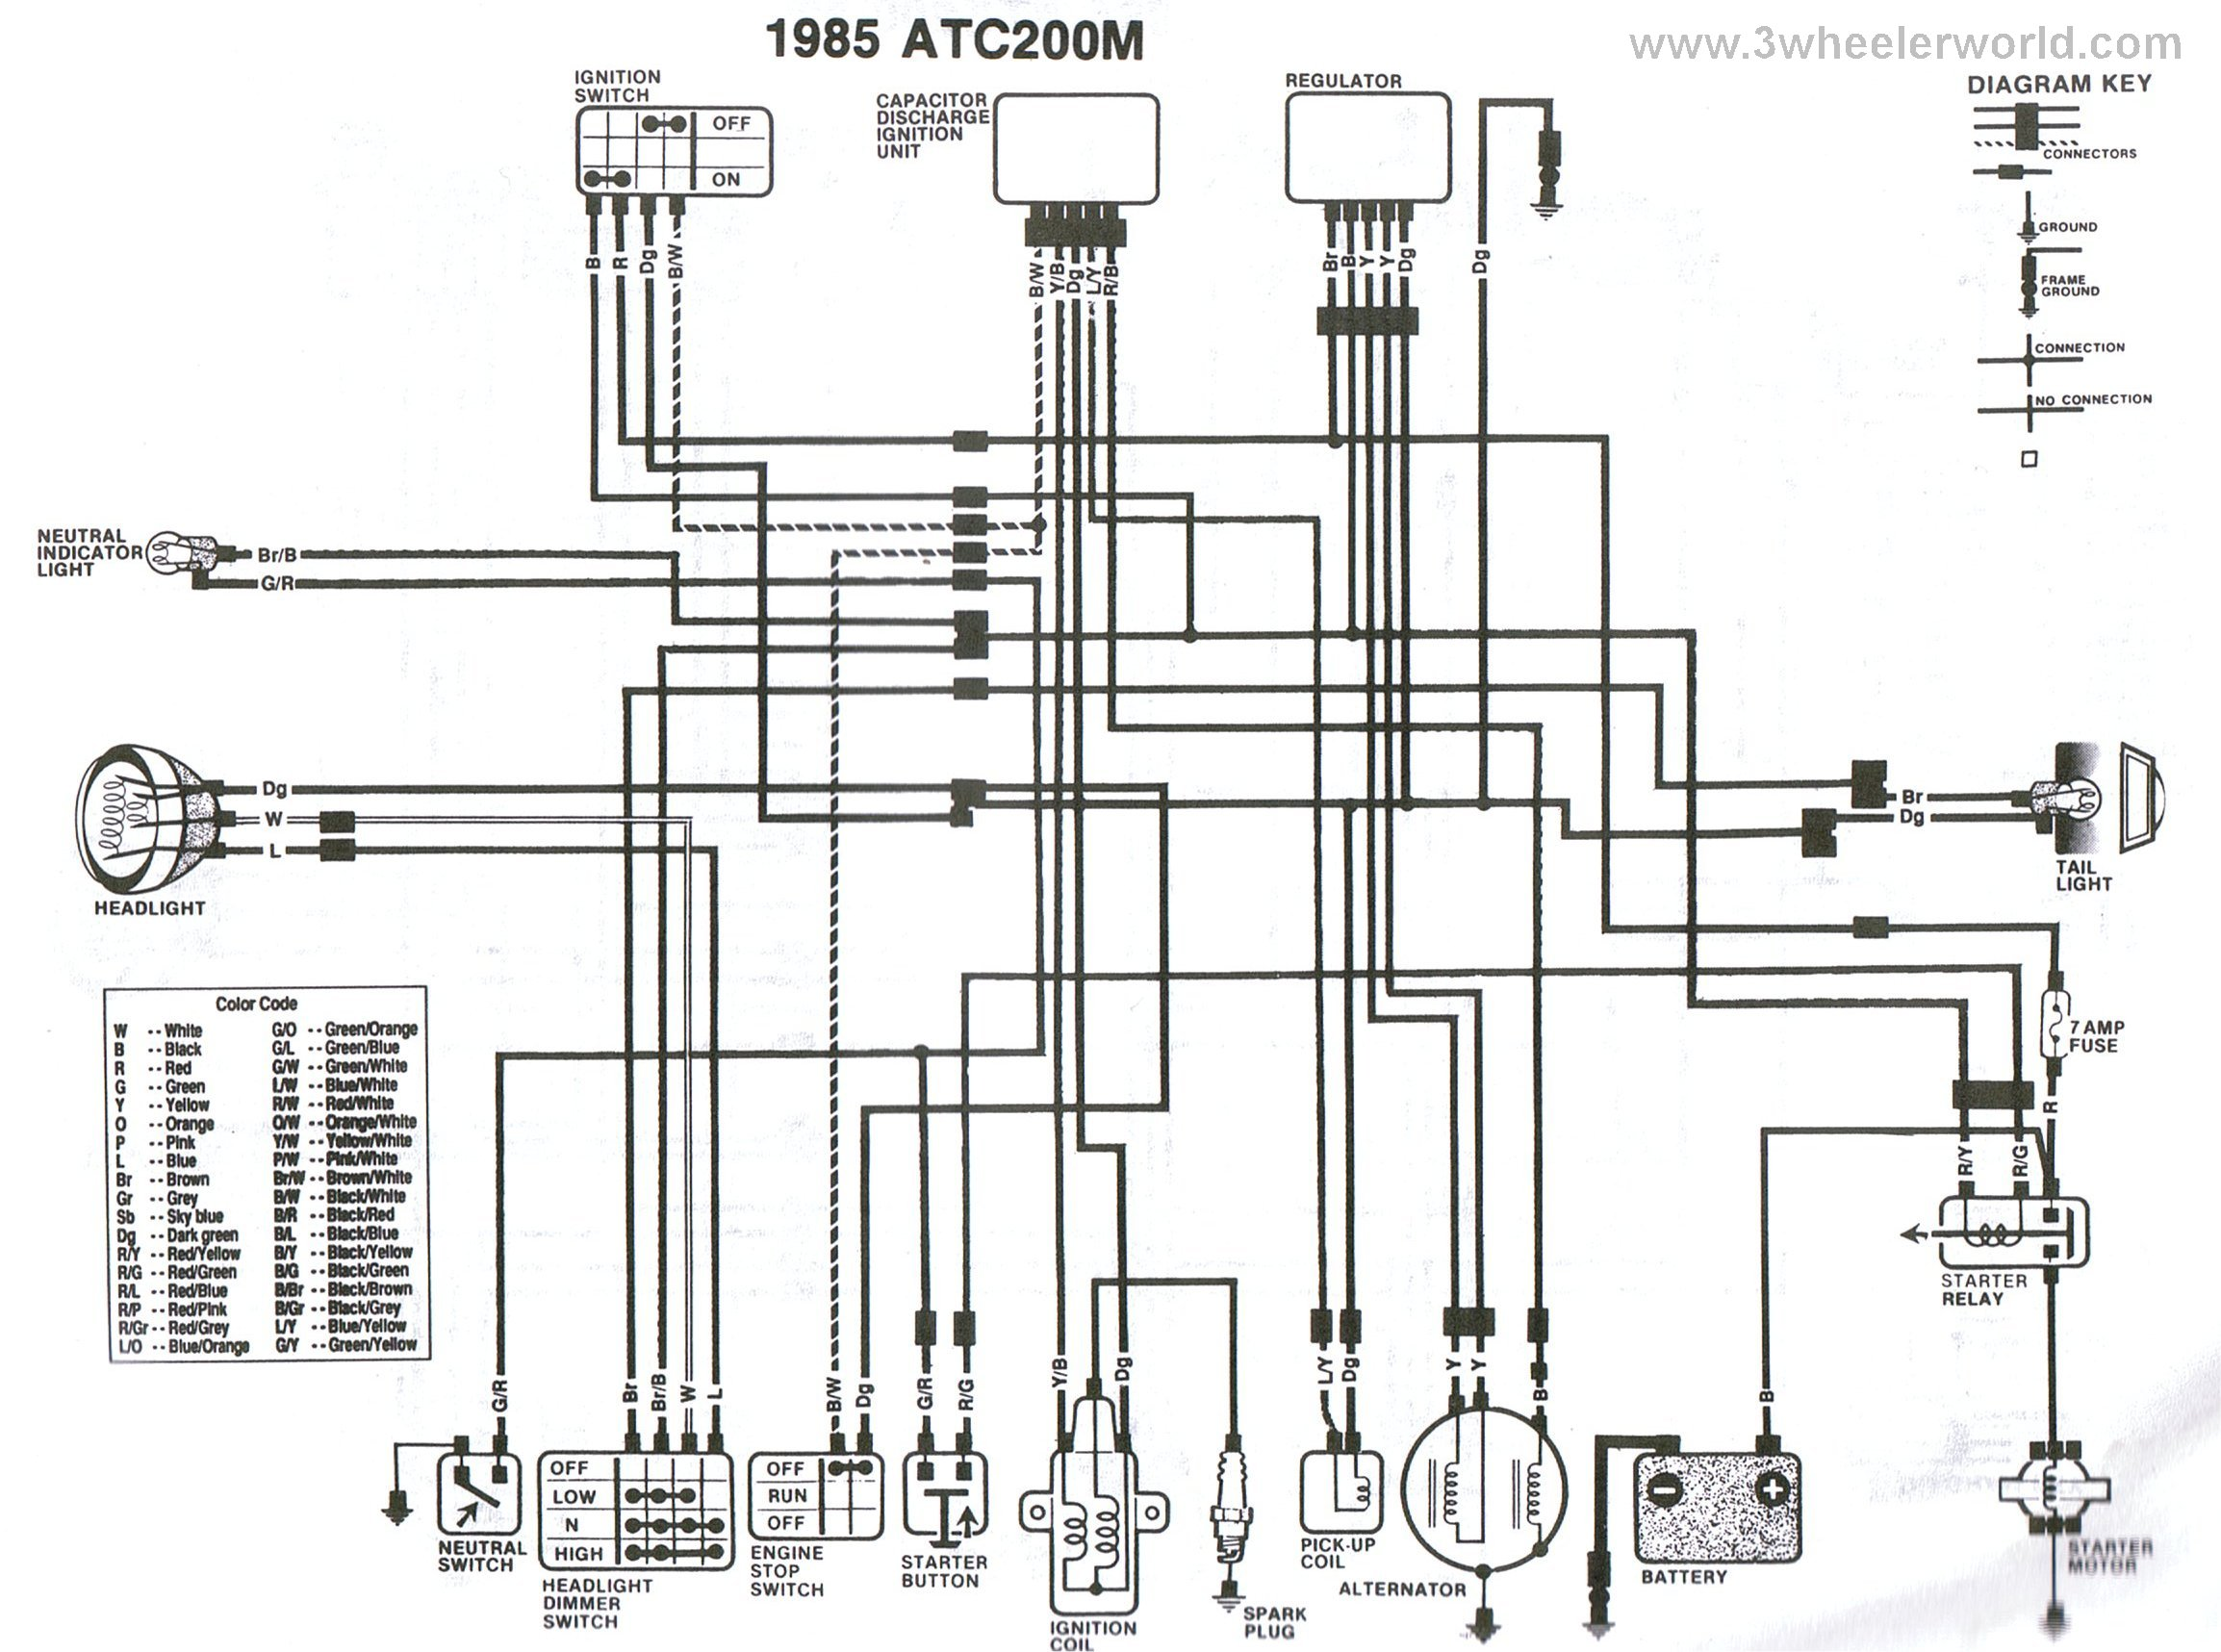 ATC200Mx85 3 wheeler world tech help honda wiring diagrams wiring diagram for honda atc 200 at bayanpartner.co